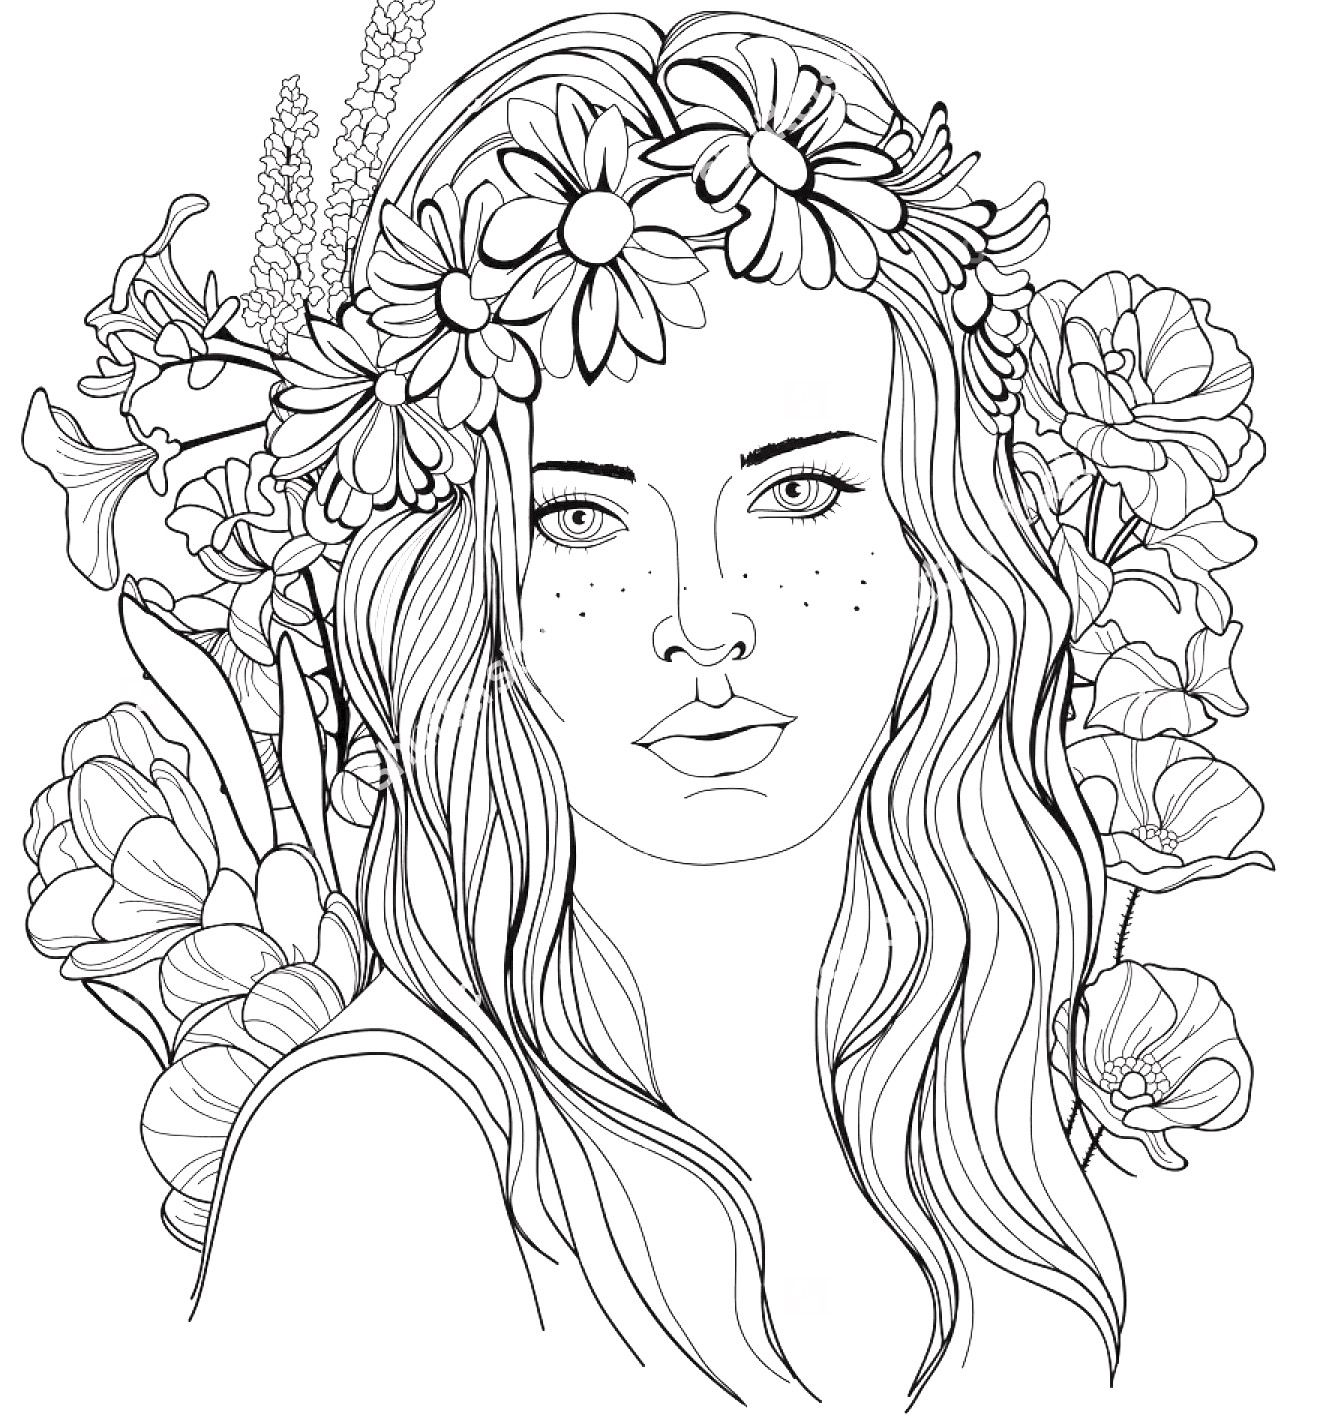 1323x1425 Image Of A Girl With A Floral Wreath In Her Hair Coloring Page